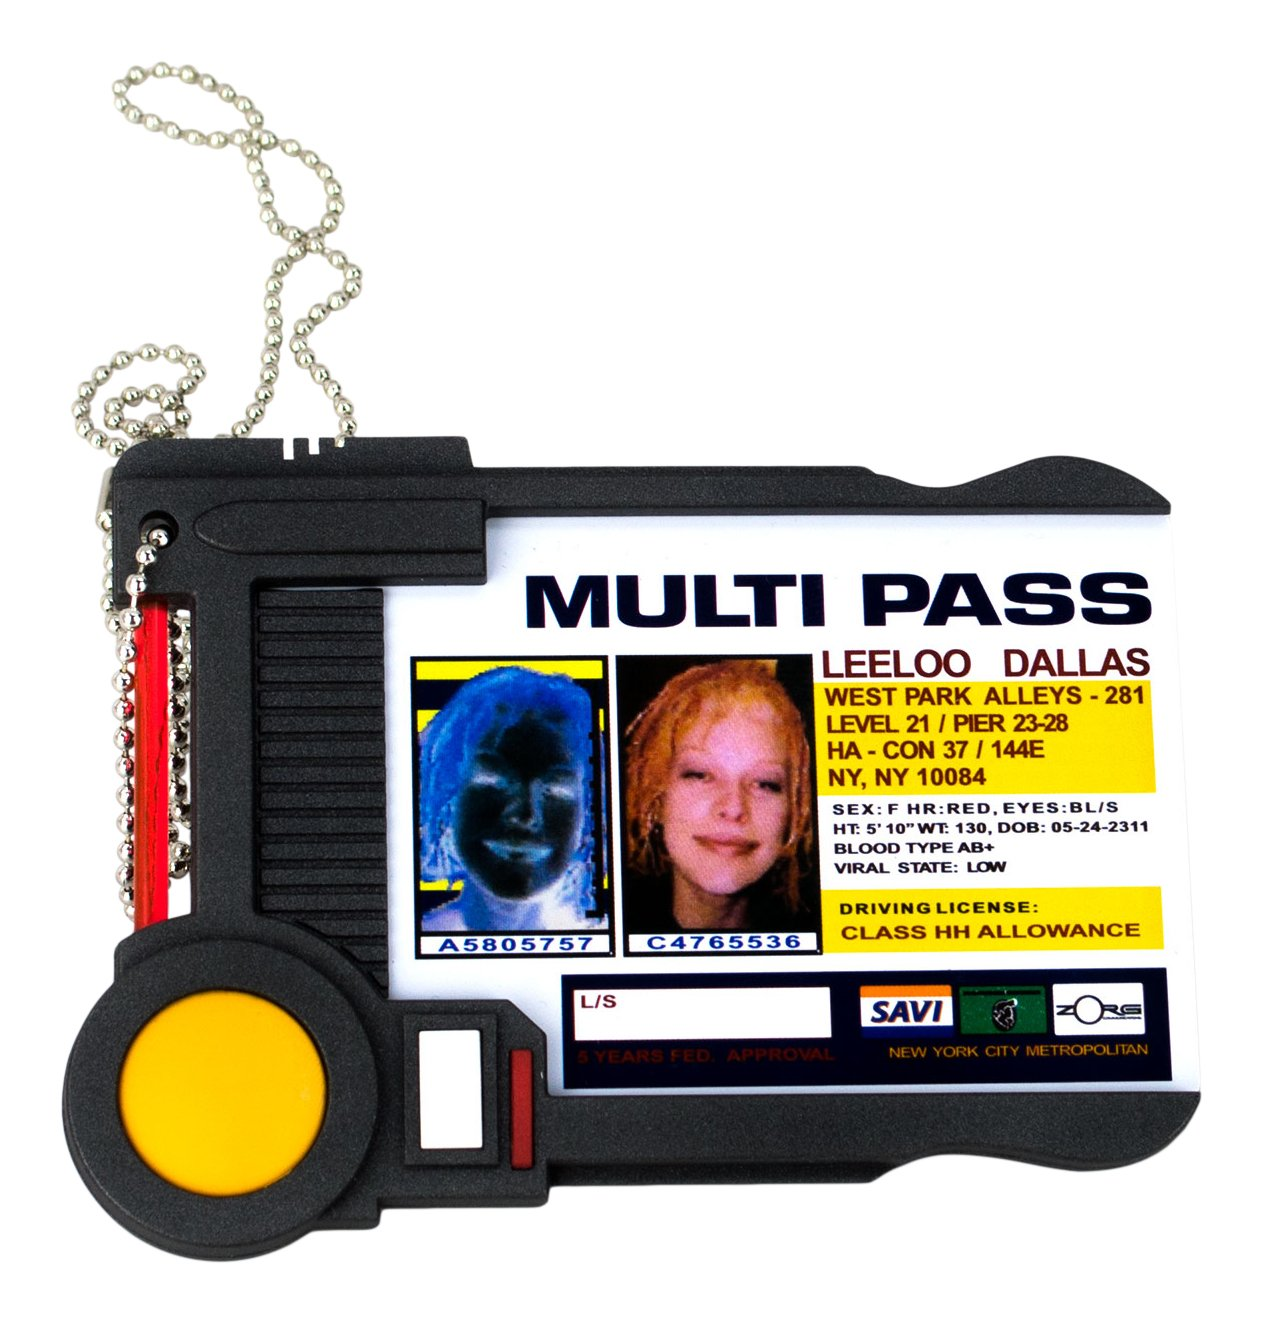 Das Fünfte Element Replik 1/1 Leeloo's Multipass